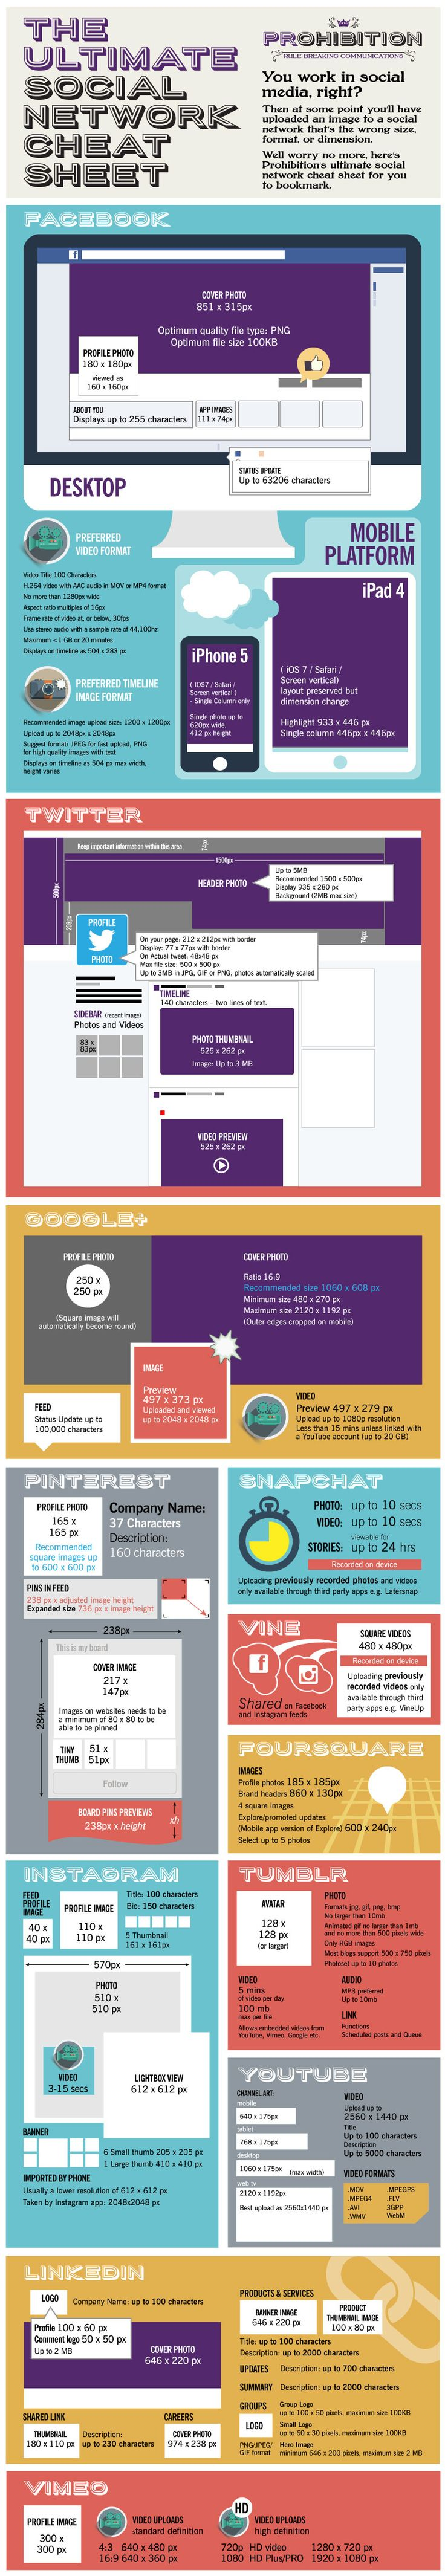 Social Media - The Ultimate Social Network Cheat Sheet [Infographic] - @marketingprofs